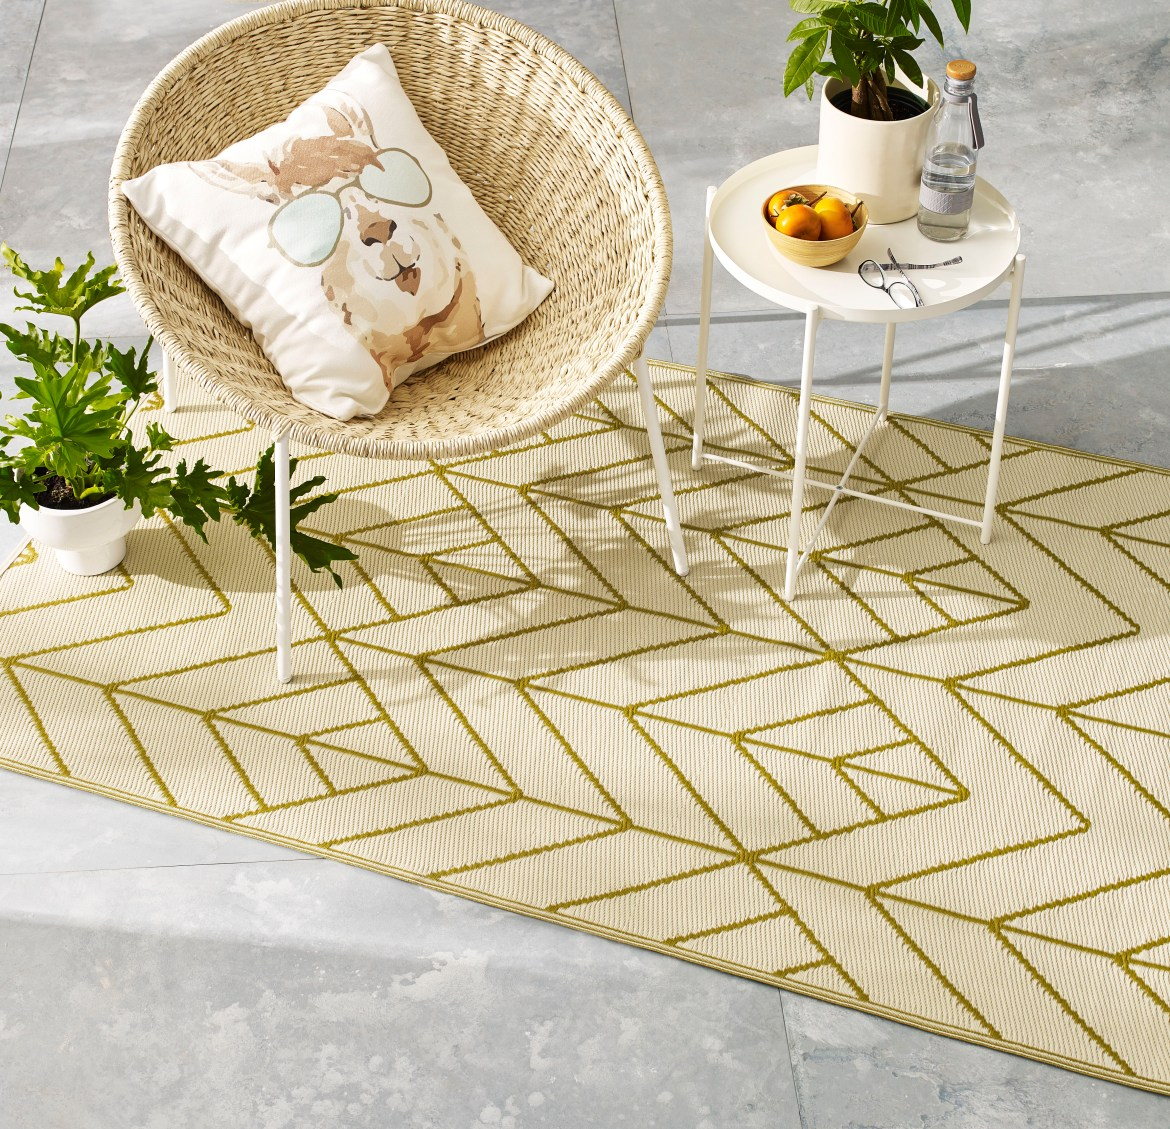 outdoor rugs with rattan chair and table